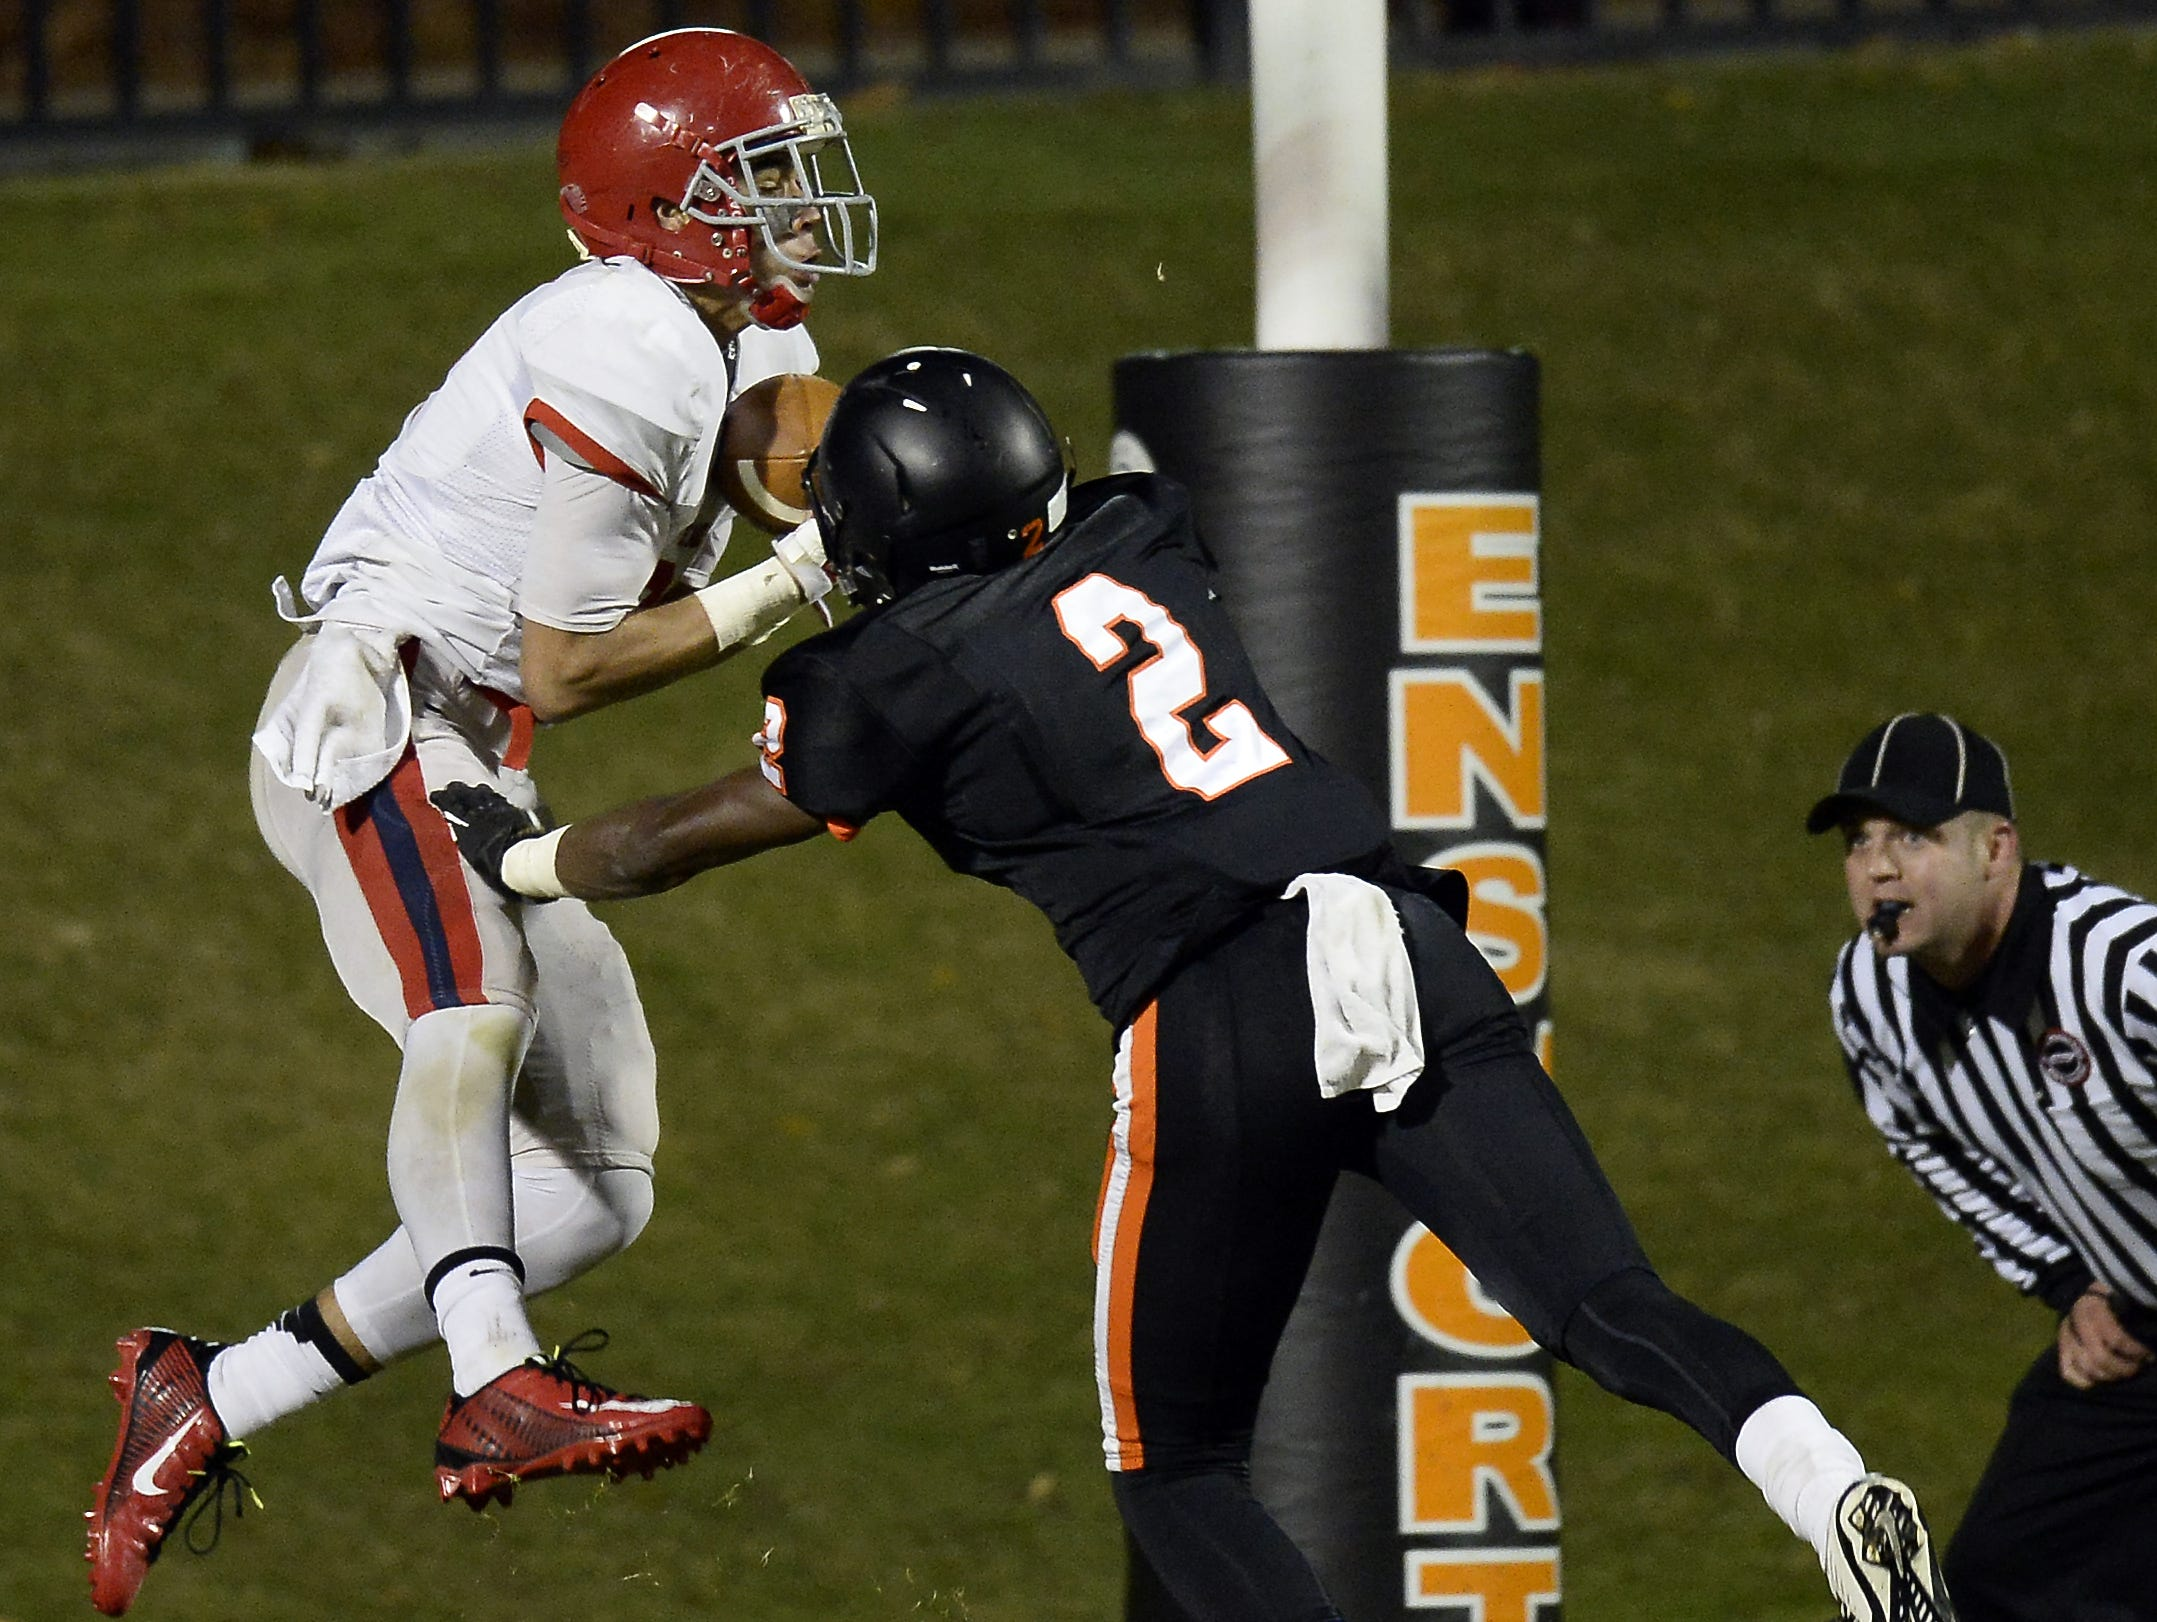 Brentwood Academy's Camron Johnson hauls in a touchdown over Ensworth's Rodney Owens (2).